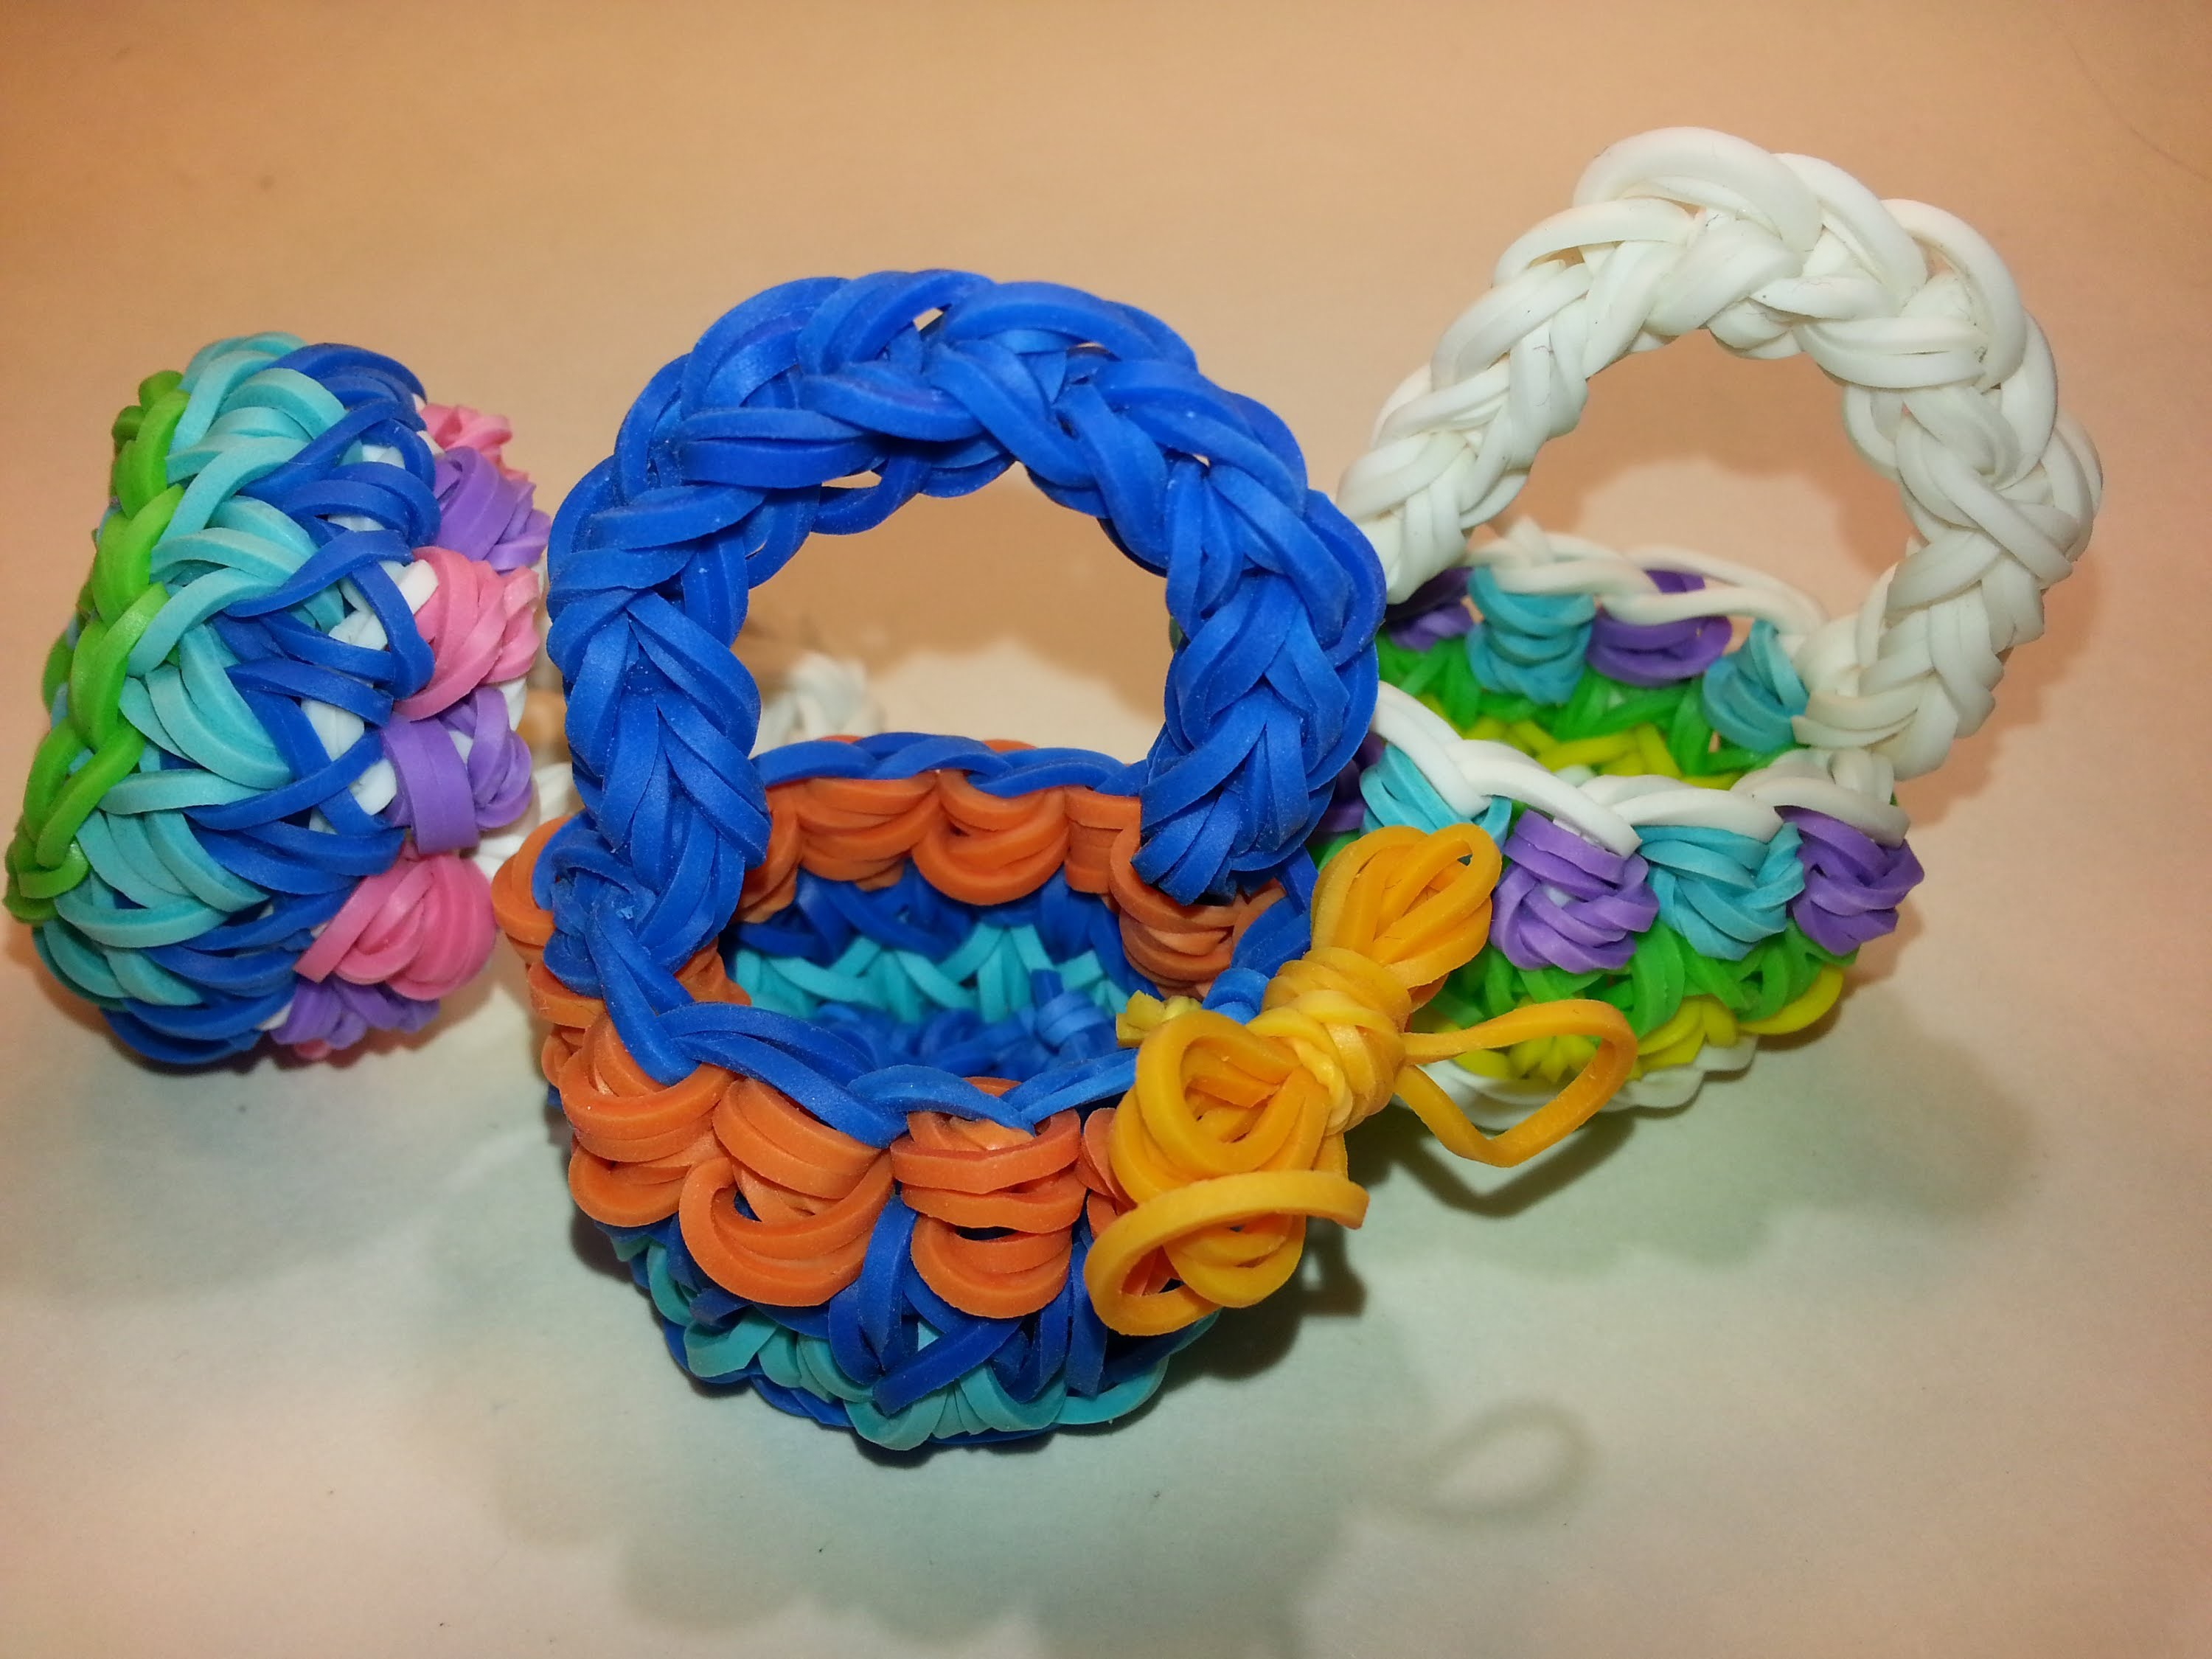 Decorative Basket Tutorial by feelinspiffy (Rainbow Loom)